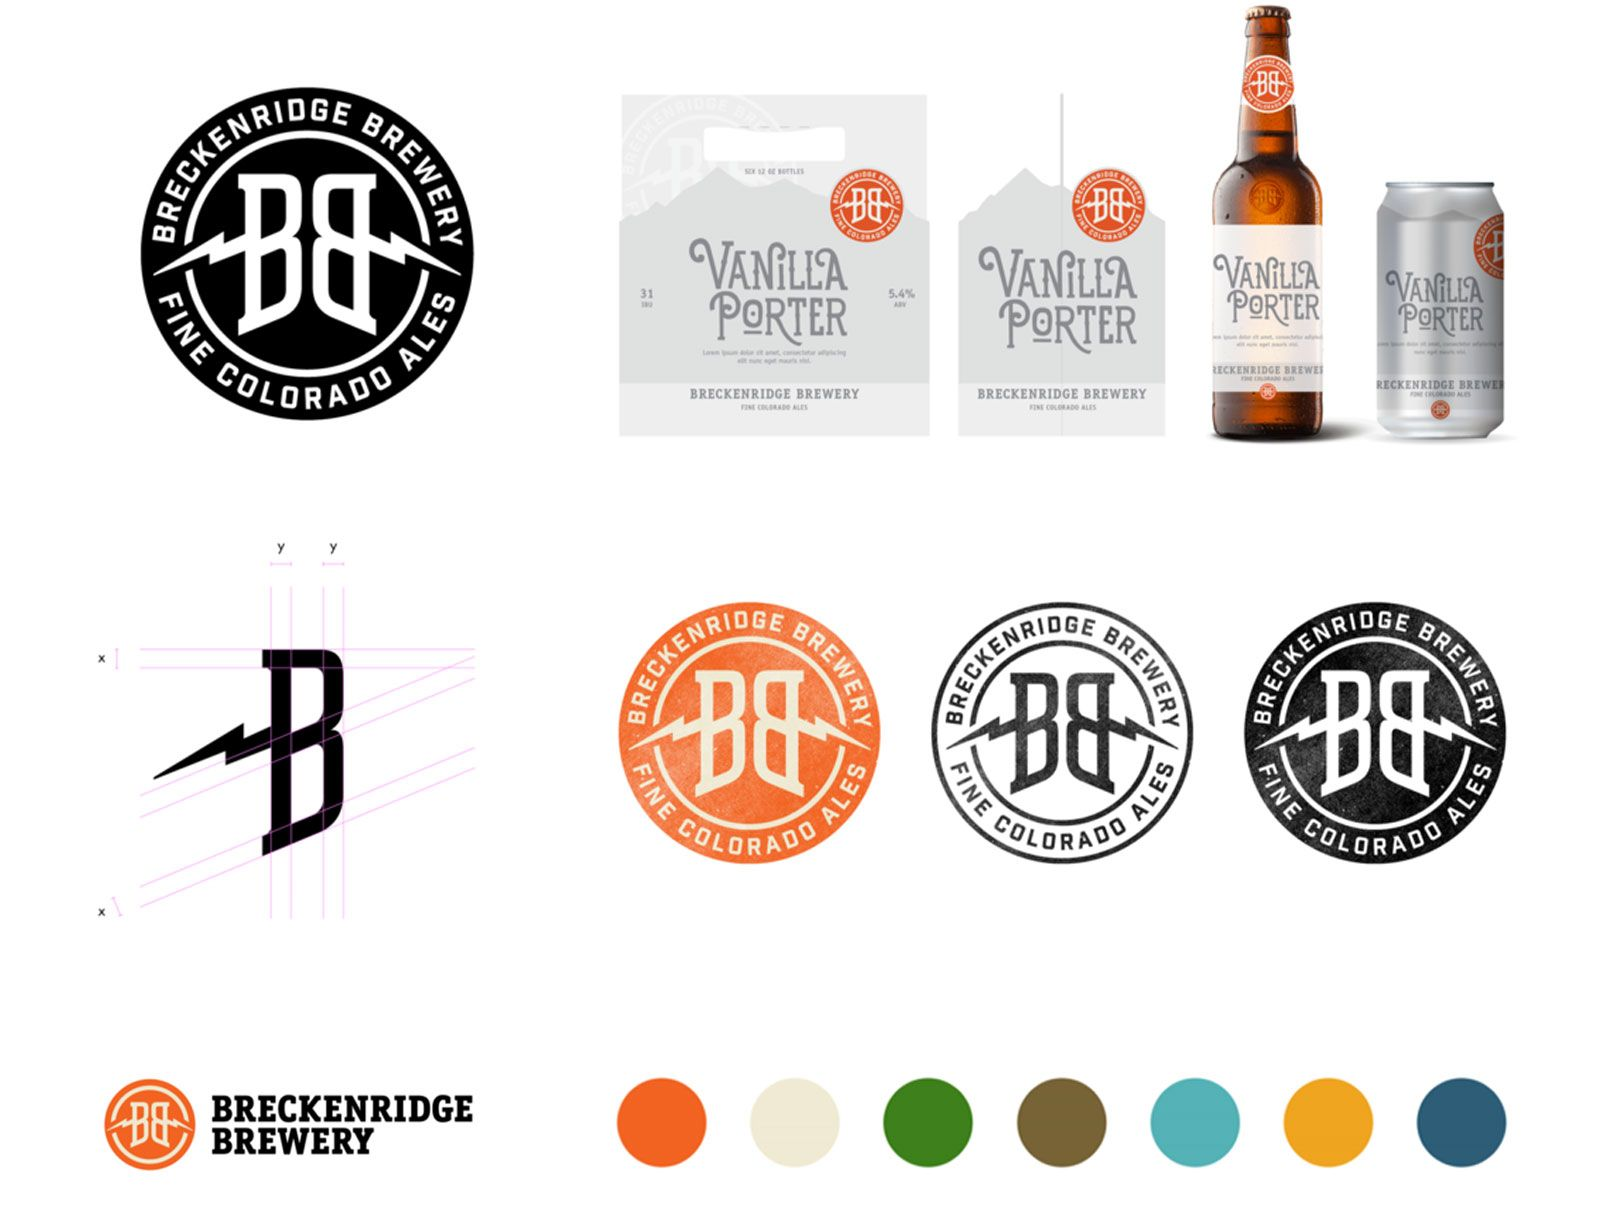 Logos, sample packaging, and color palette for Breckenridge Brewery